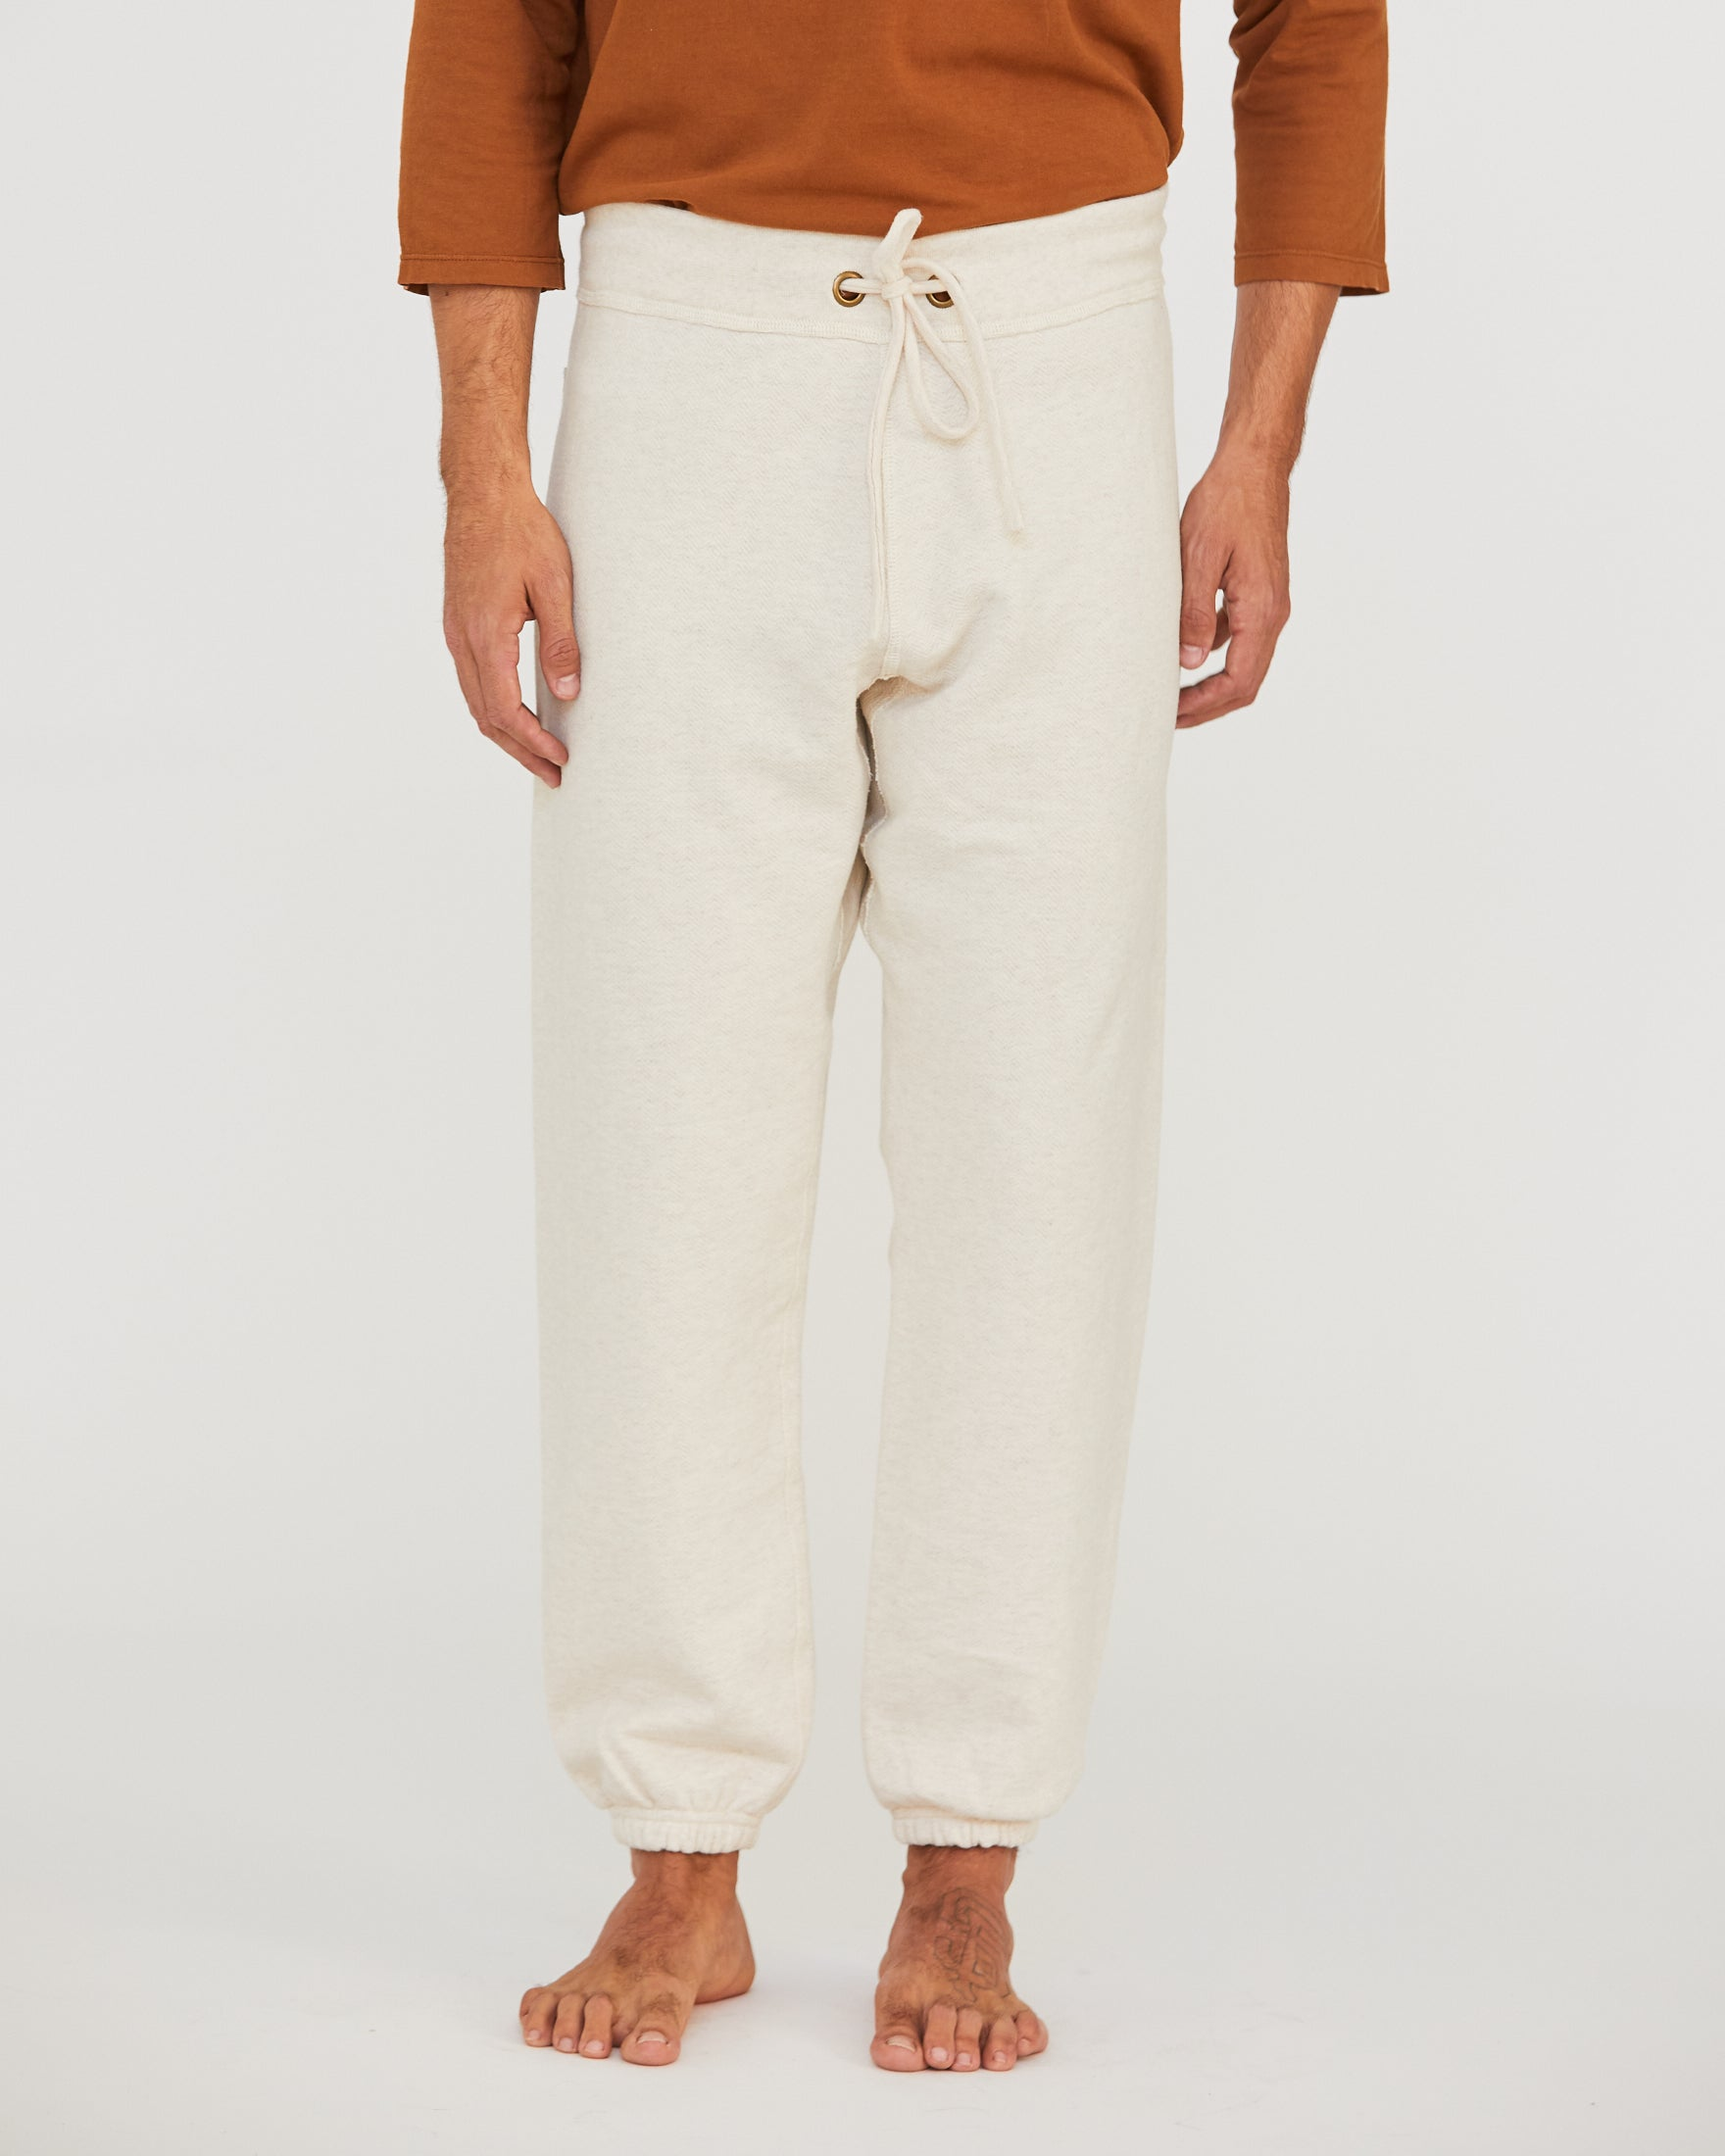 LUCA LEISURE PANT - NATURAL